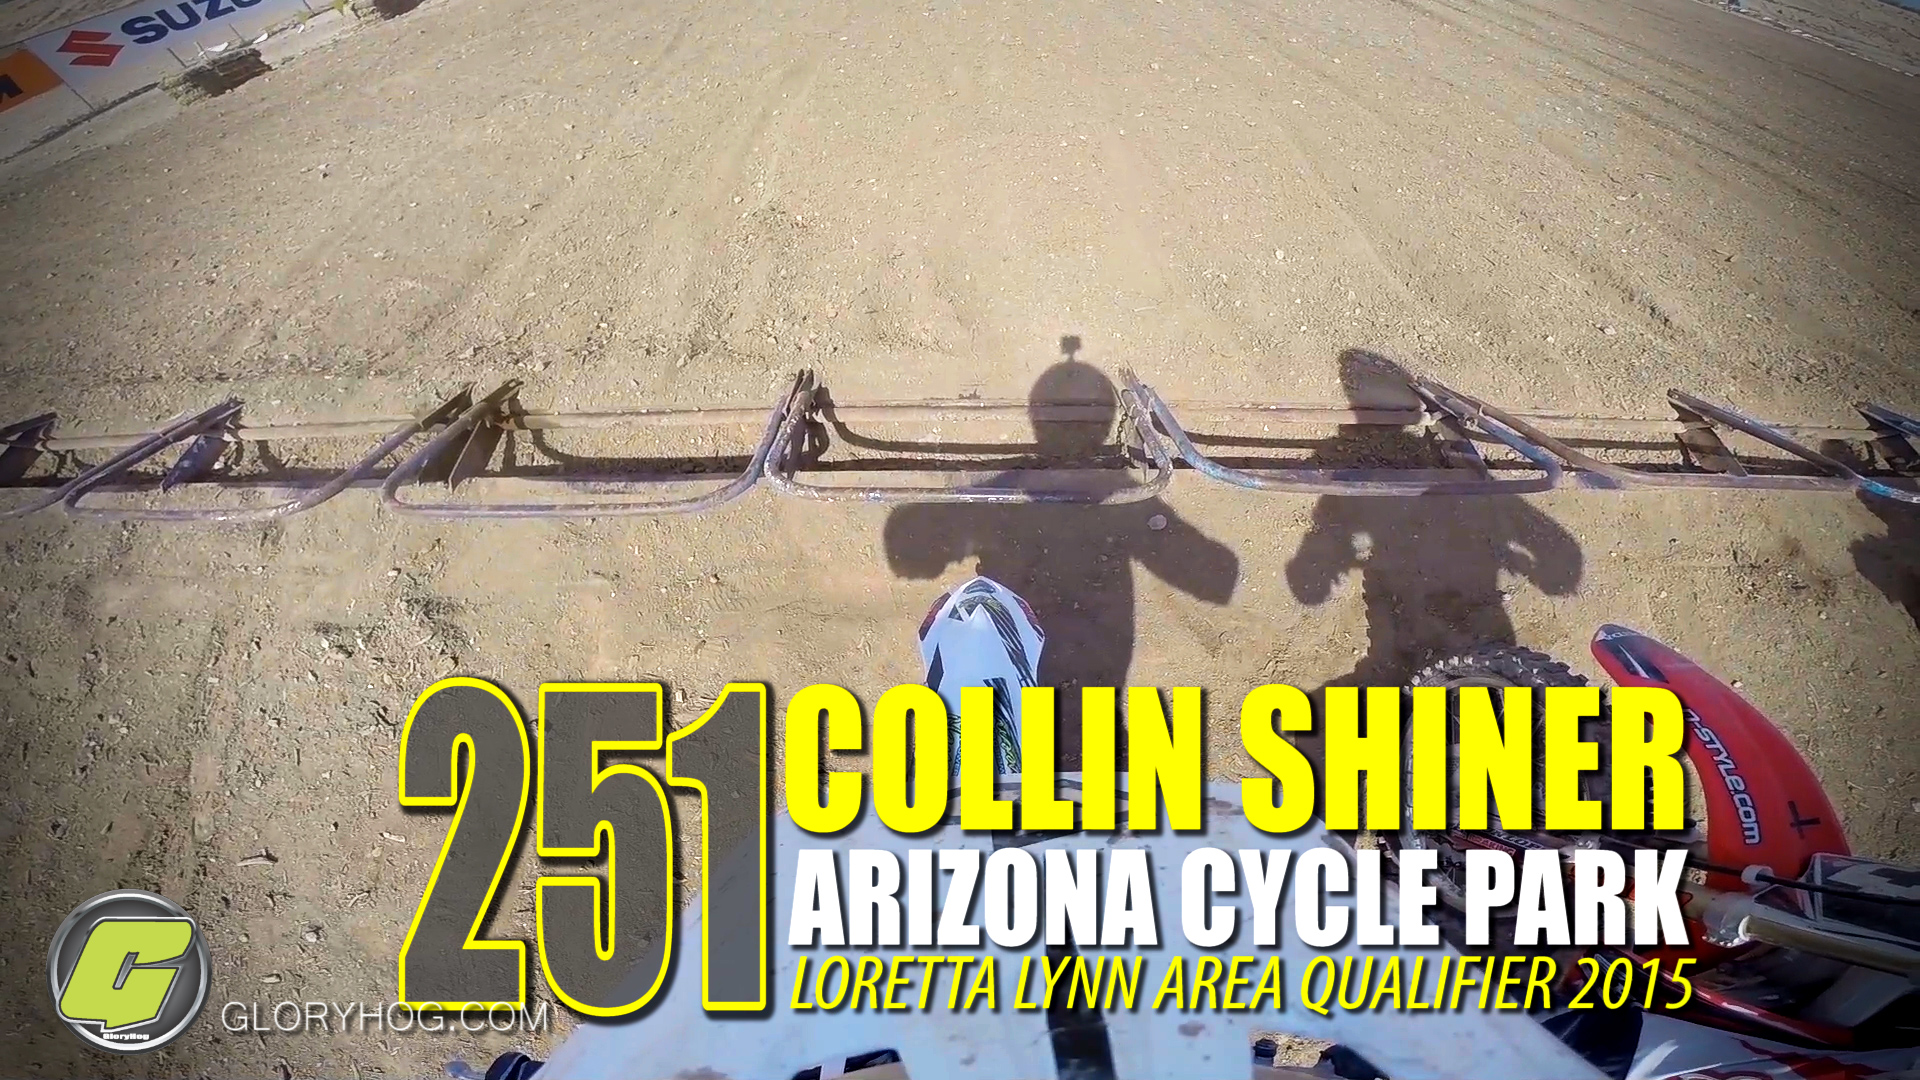 HELMET CAM: Collin Shiner Arizona Cycle Park LLQ 2015